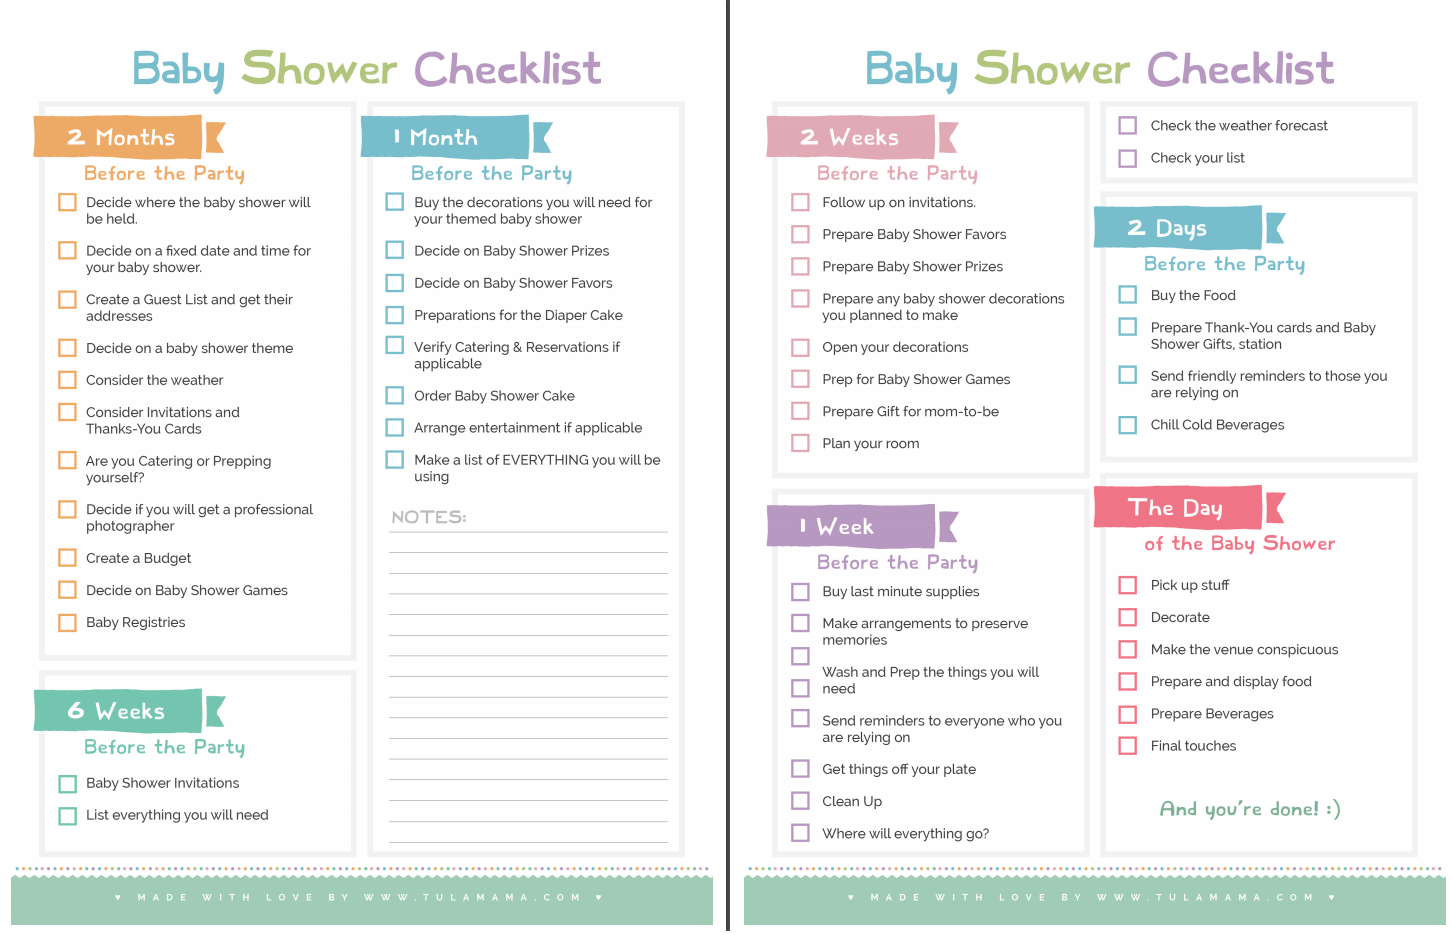 The Only Baby Shower Checklist You Will Need